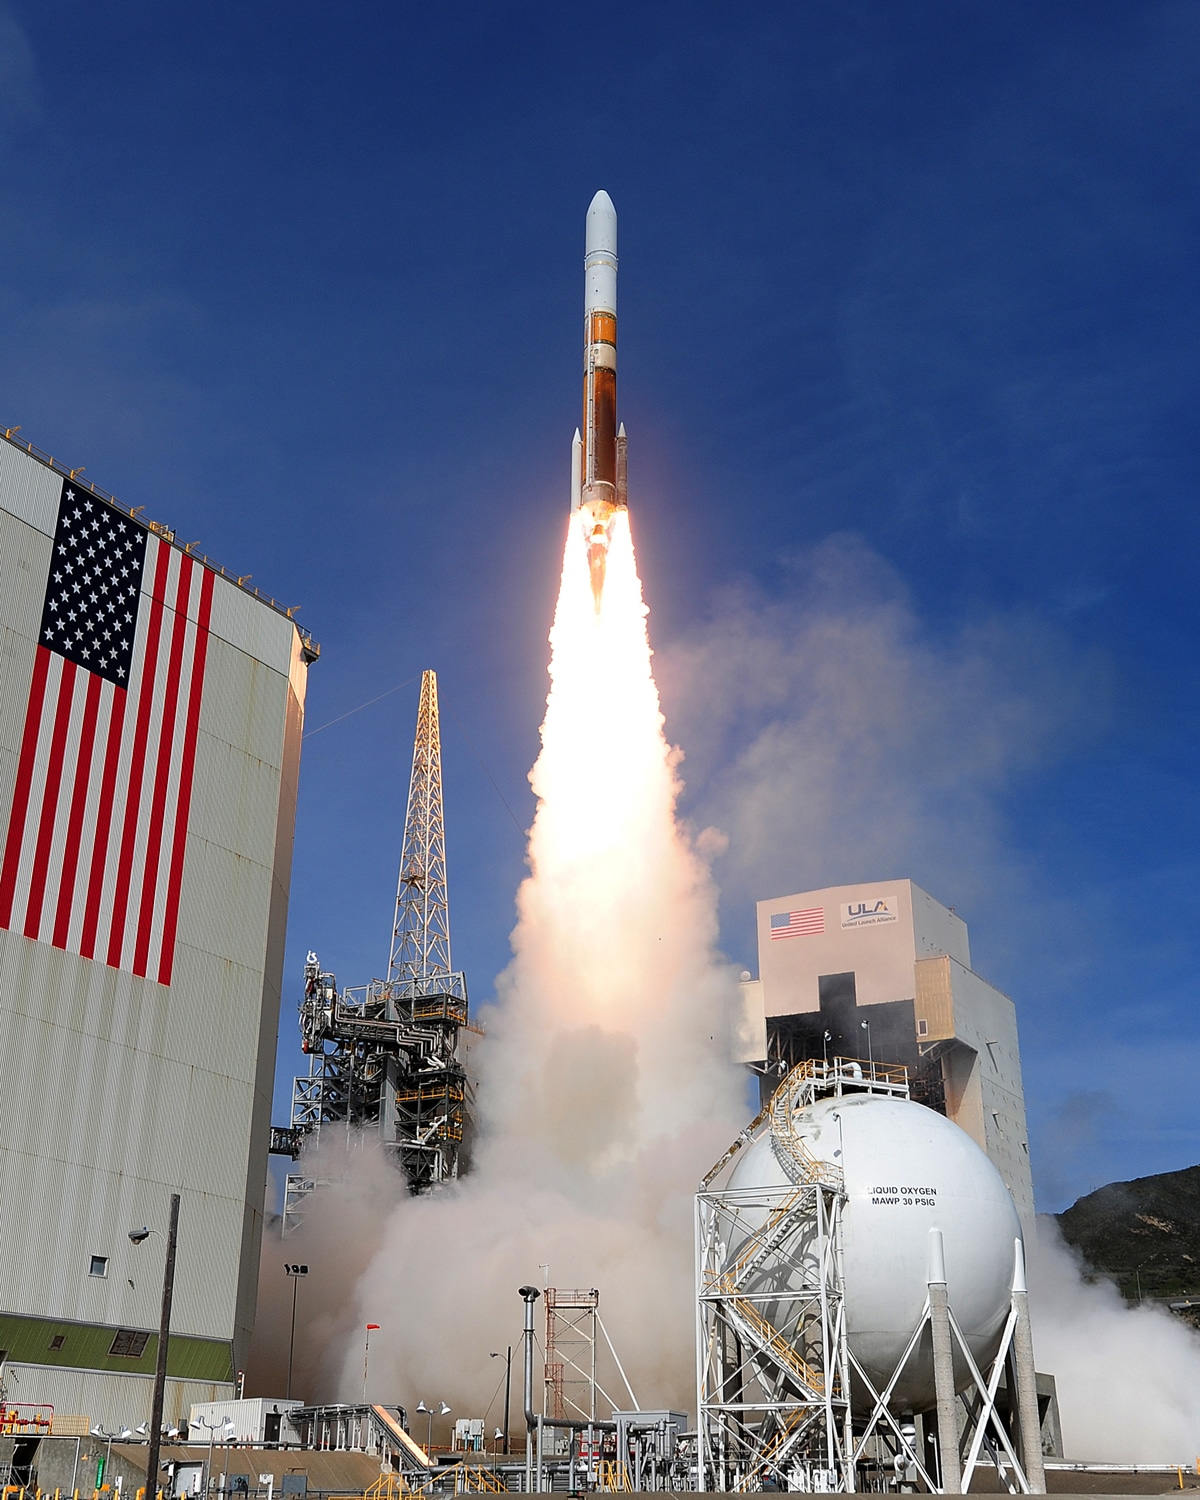 The last Delta 4-Medium rocket is set to launch Thursday with a critical new GPS satellite